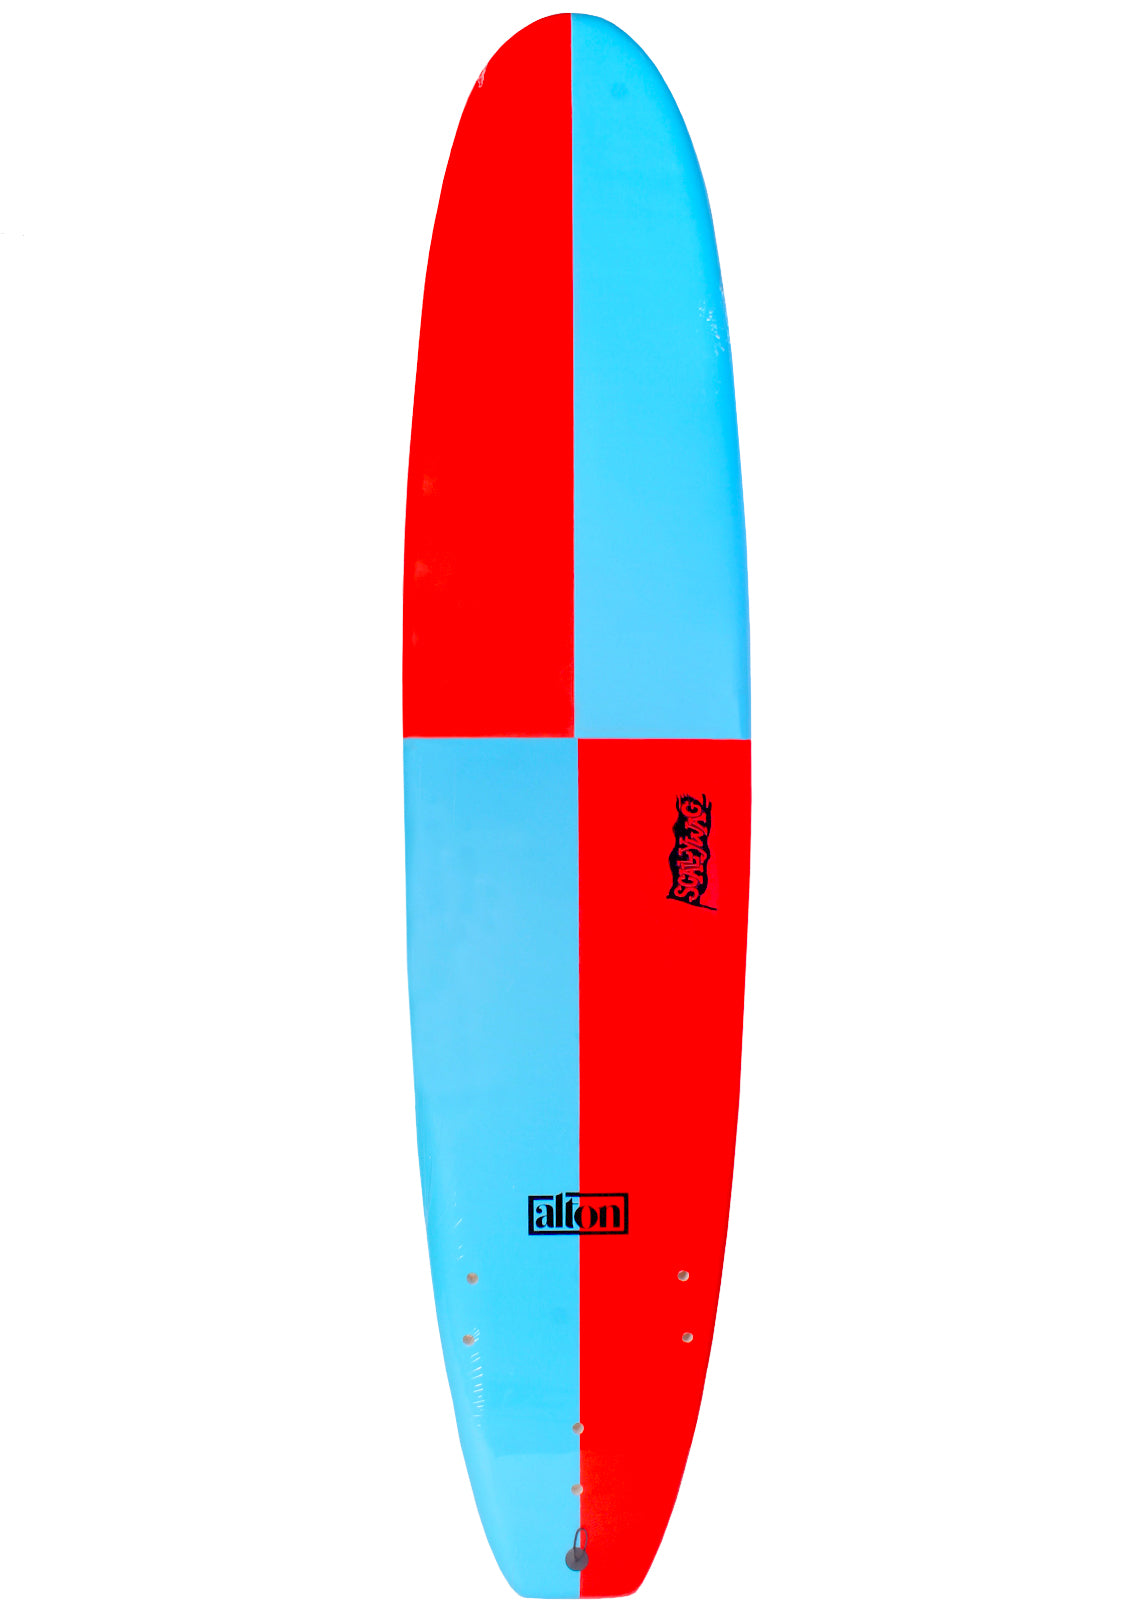 Alton Scallwag Softboard 8'6